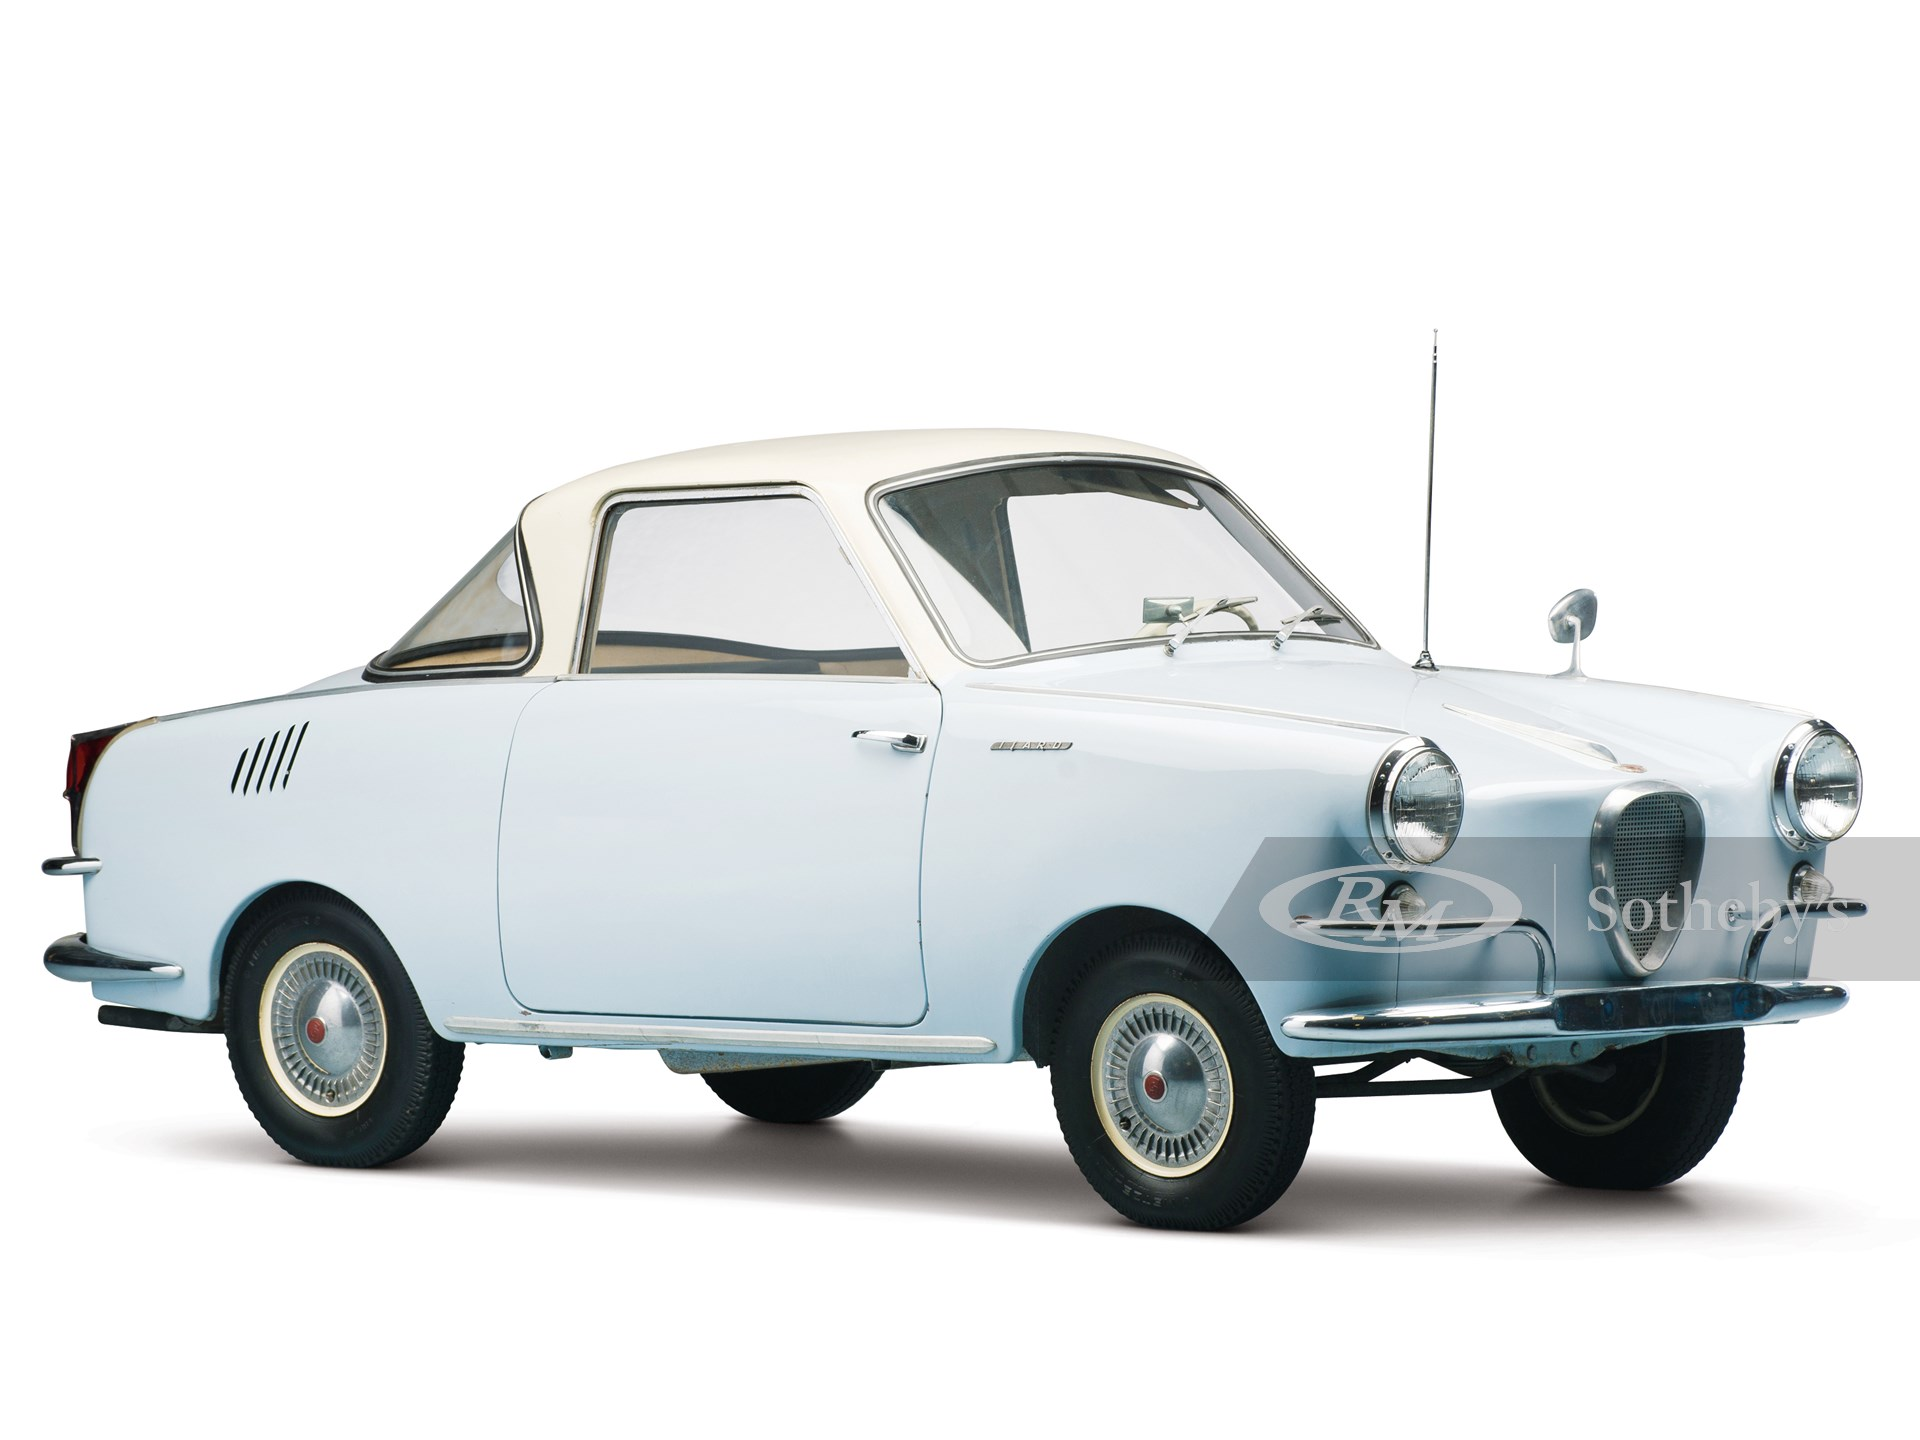 1959 Glas Isard 400 Coupe